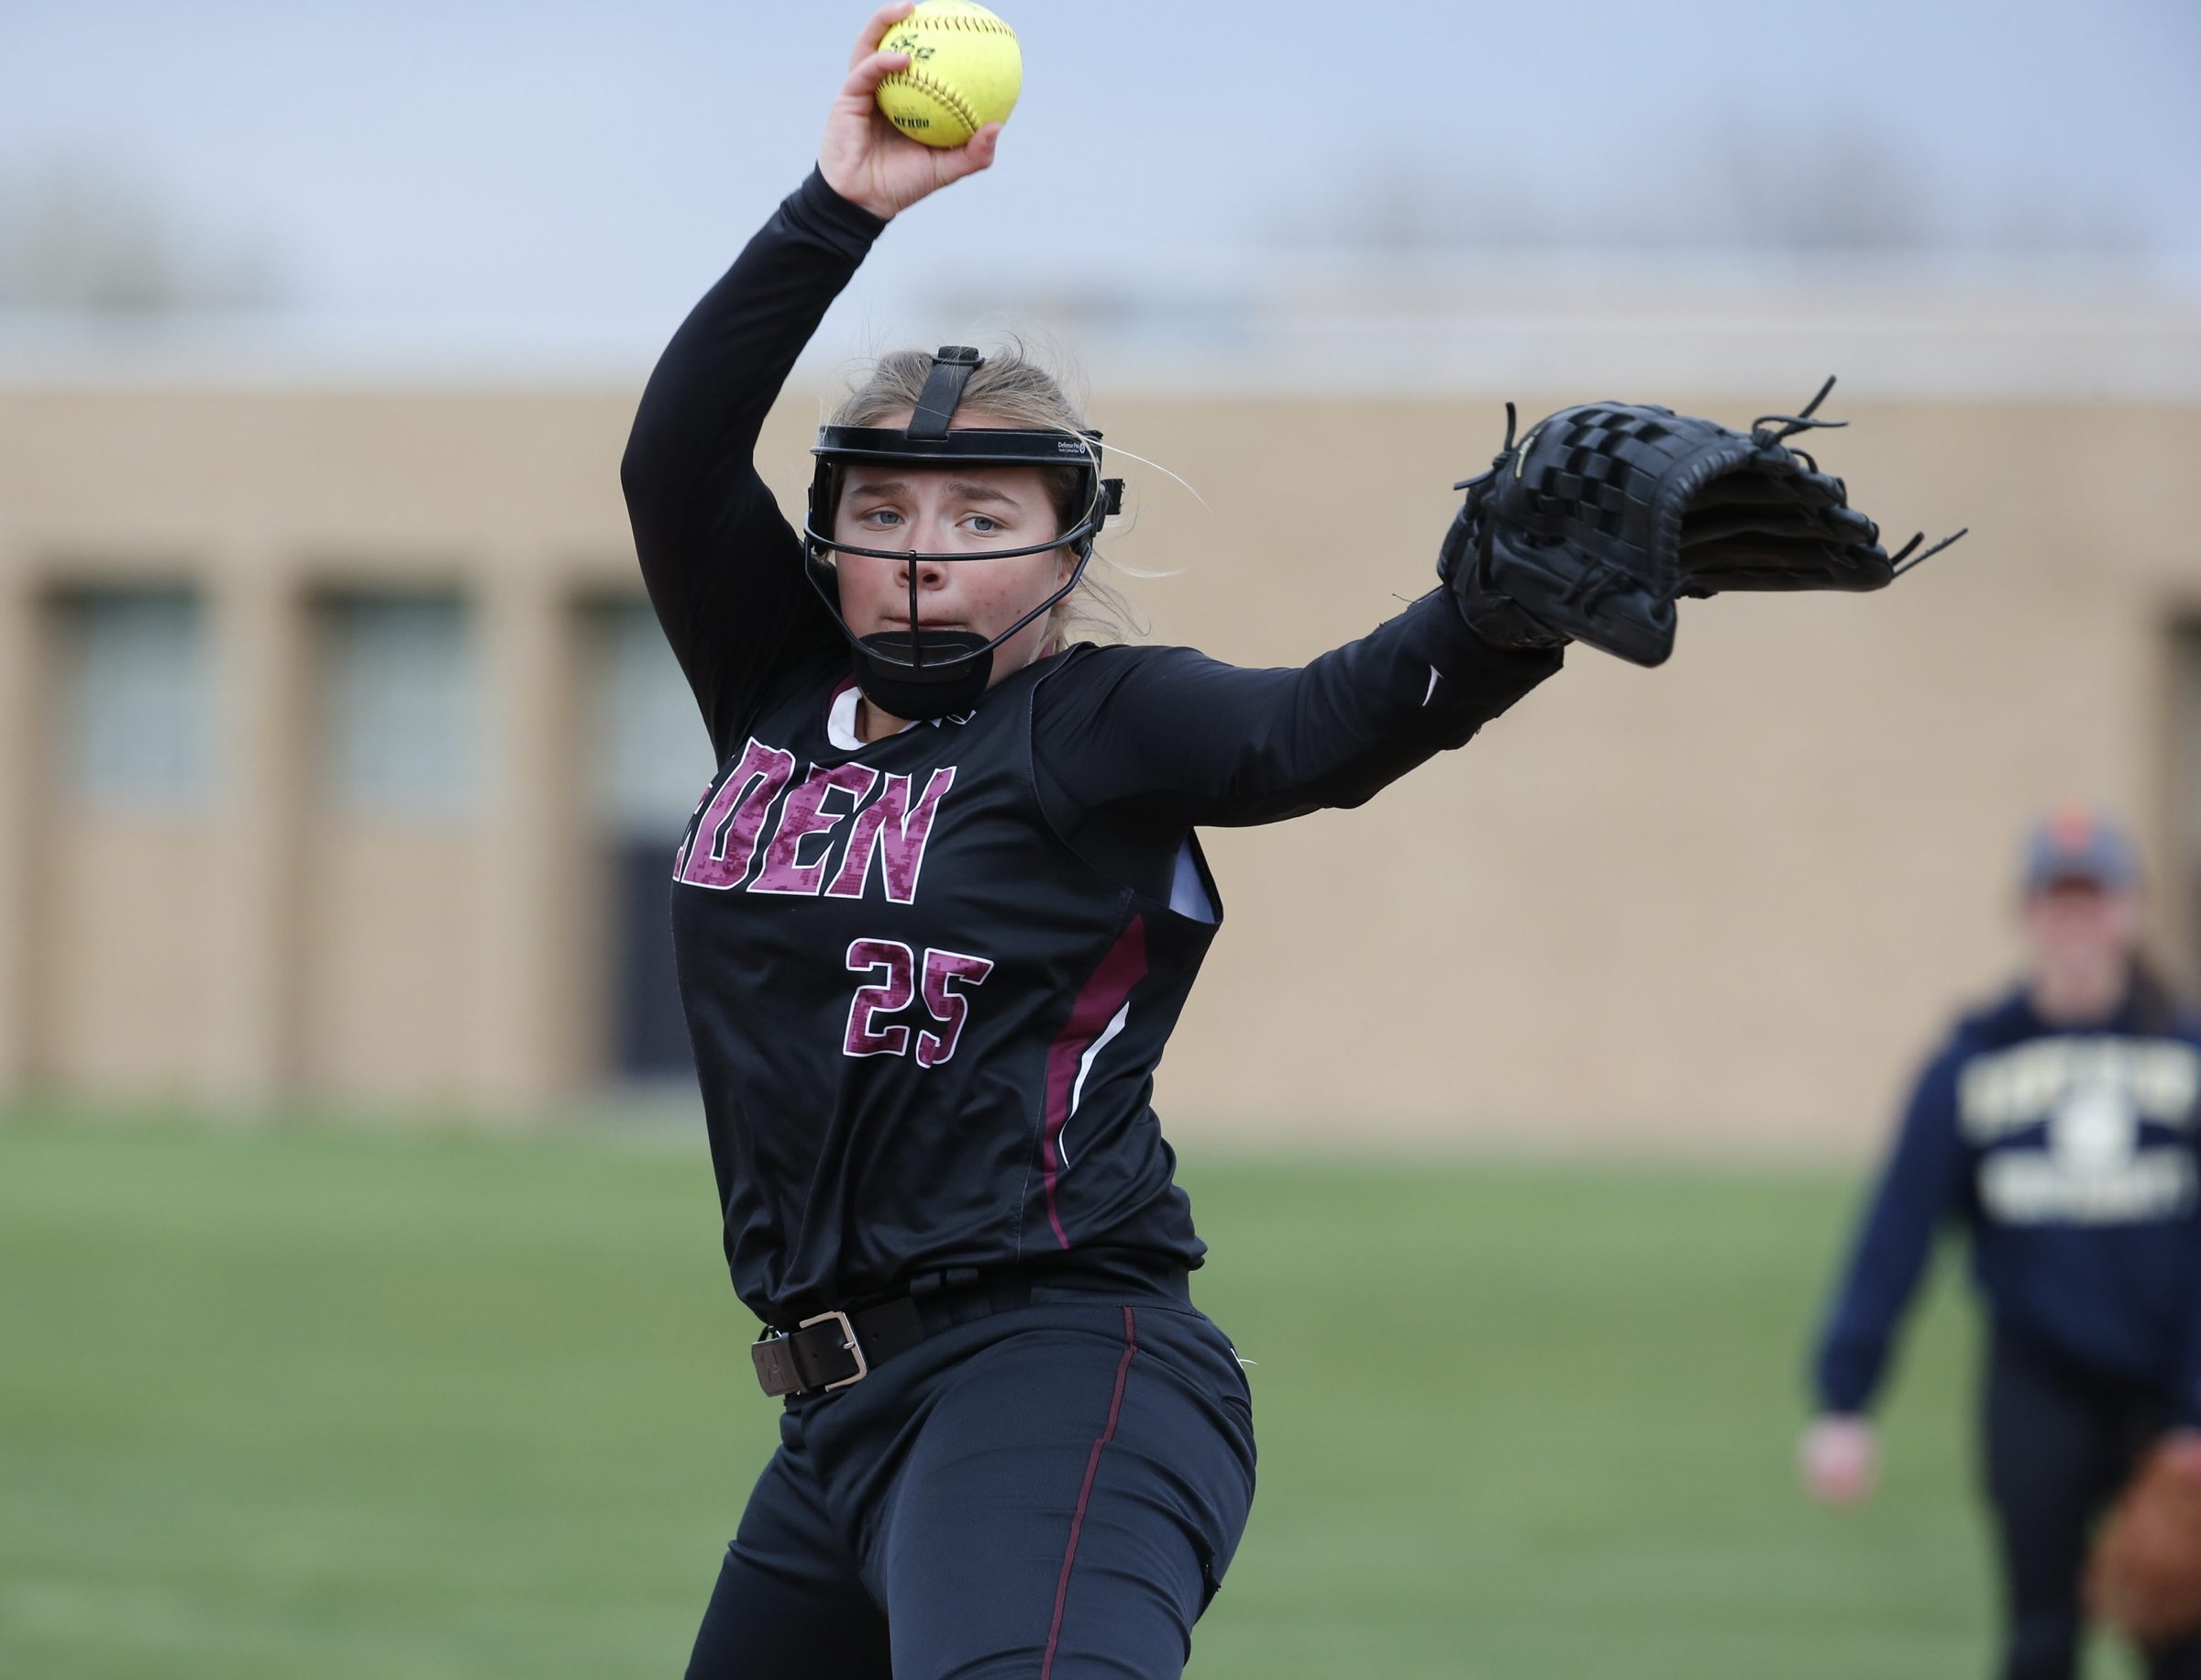 Brittany Goodrich tossed a no-hitter with 10 strikeouts Thursday during Eden's 16-0 win over Lackawanna.